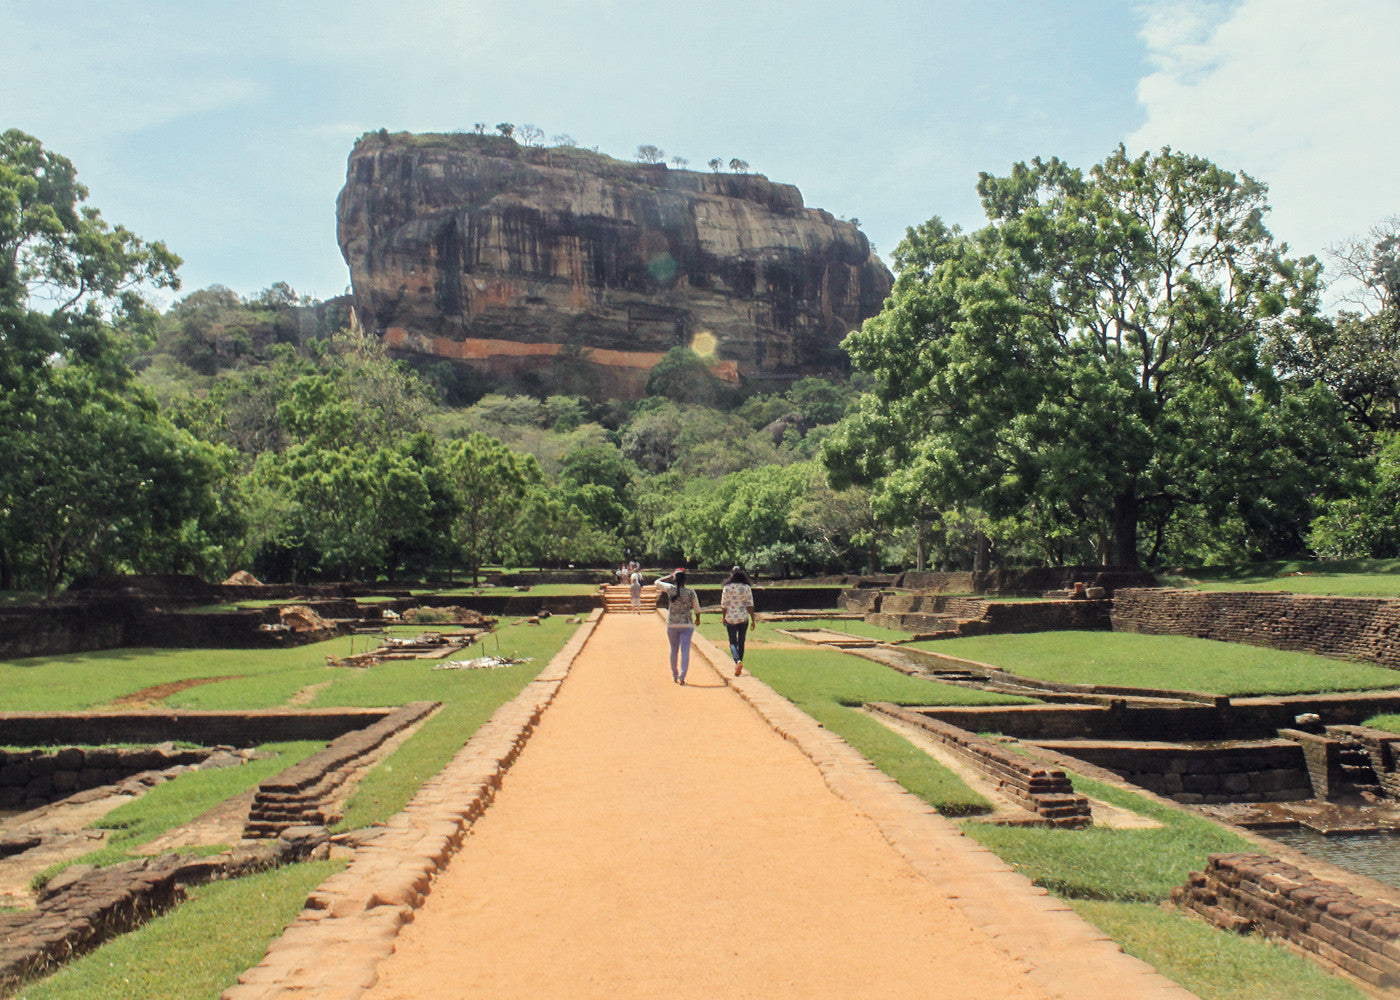 Approaching Sigiriya, an ancient rock fortress